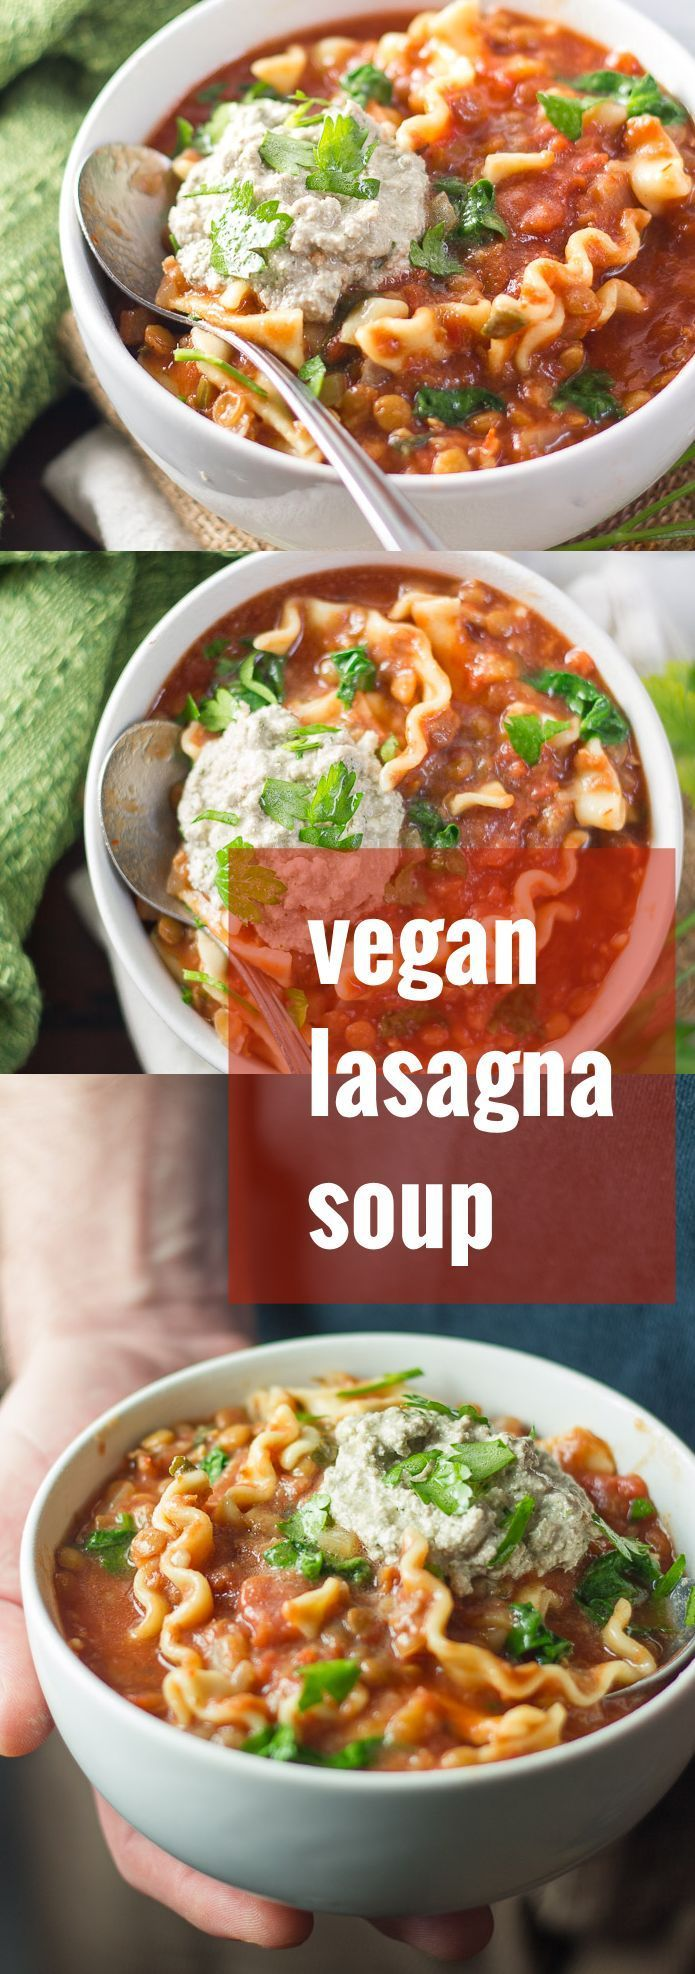 Hearty lentils and tender noodles are simmered up in chunky tomato soup and topped with creamy vegan pesto ricotta to make this cozy vegan lasagna soup.